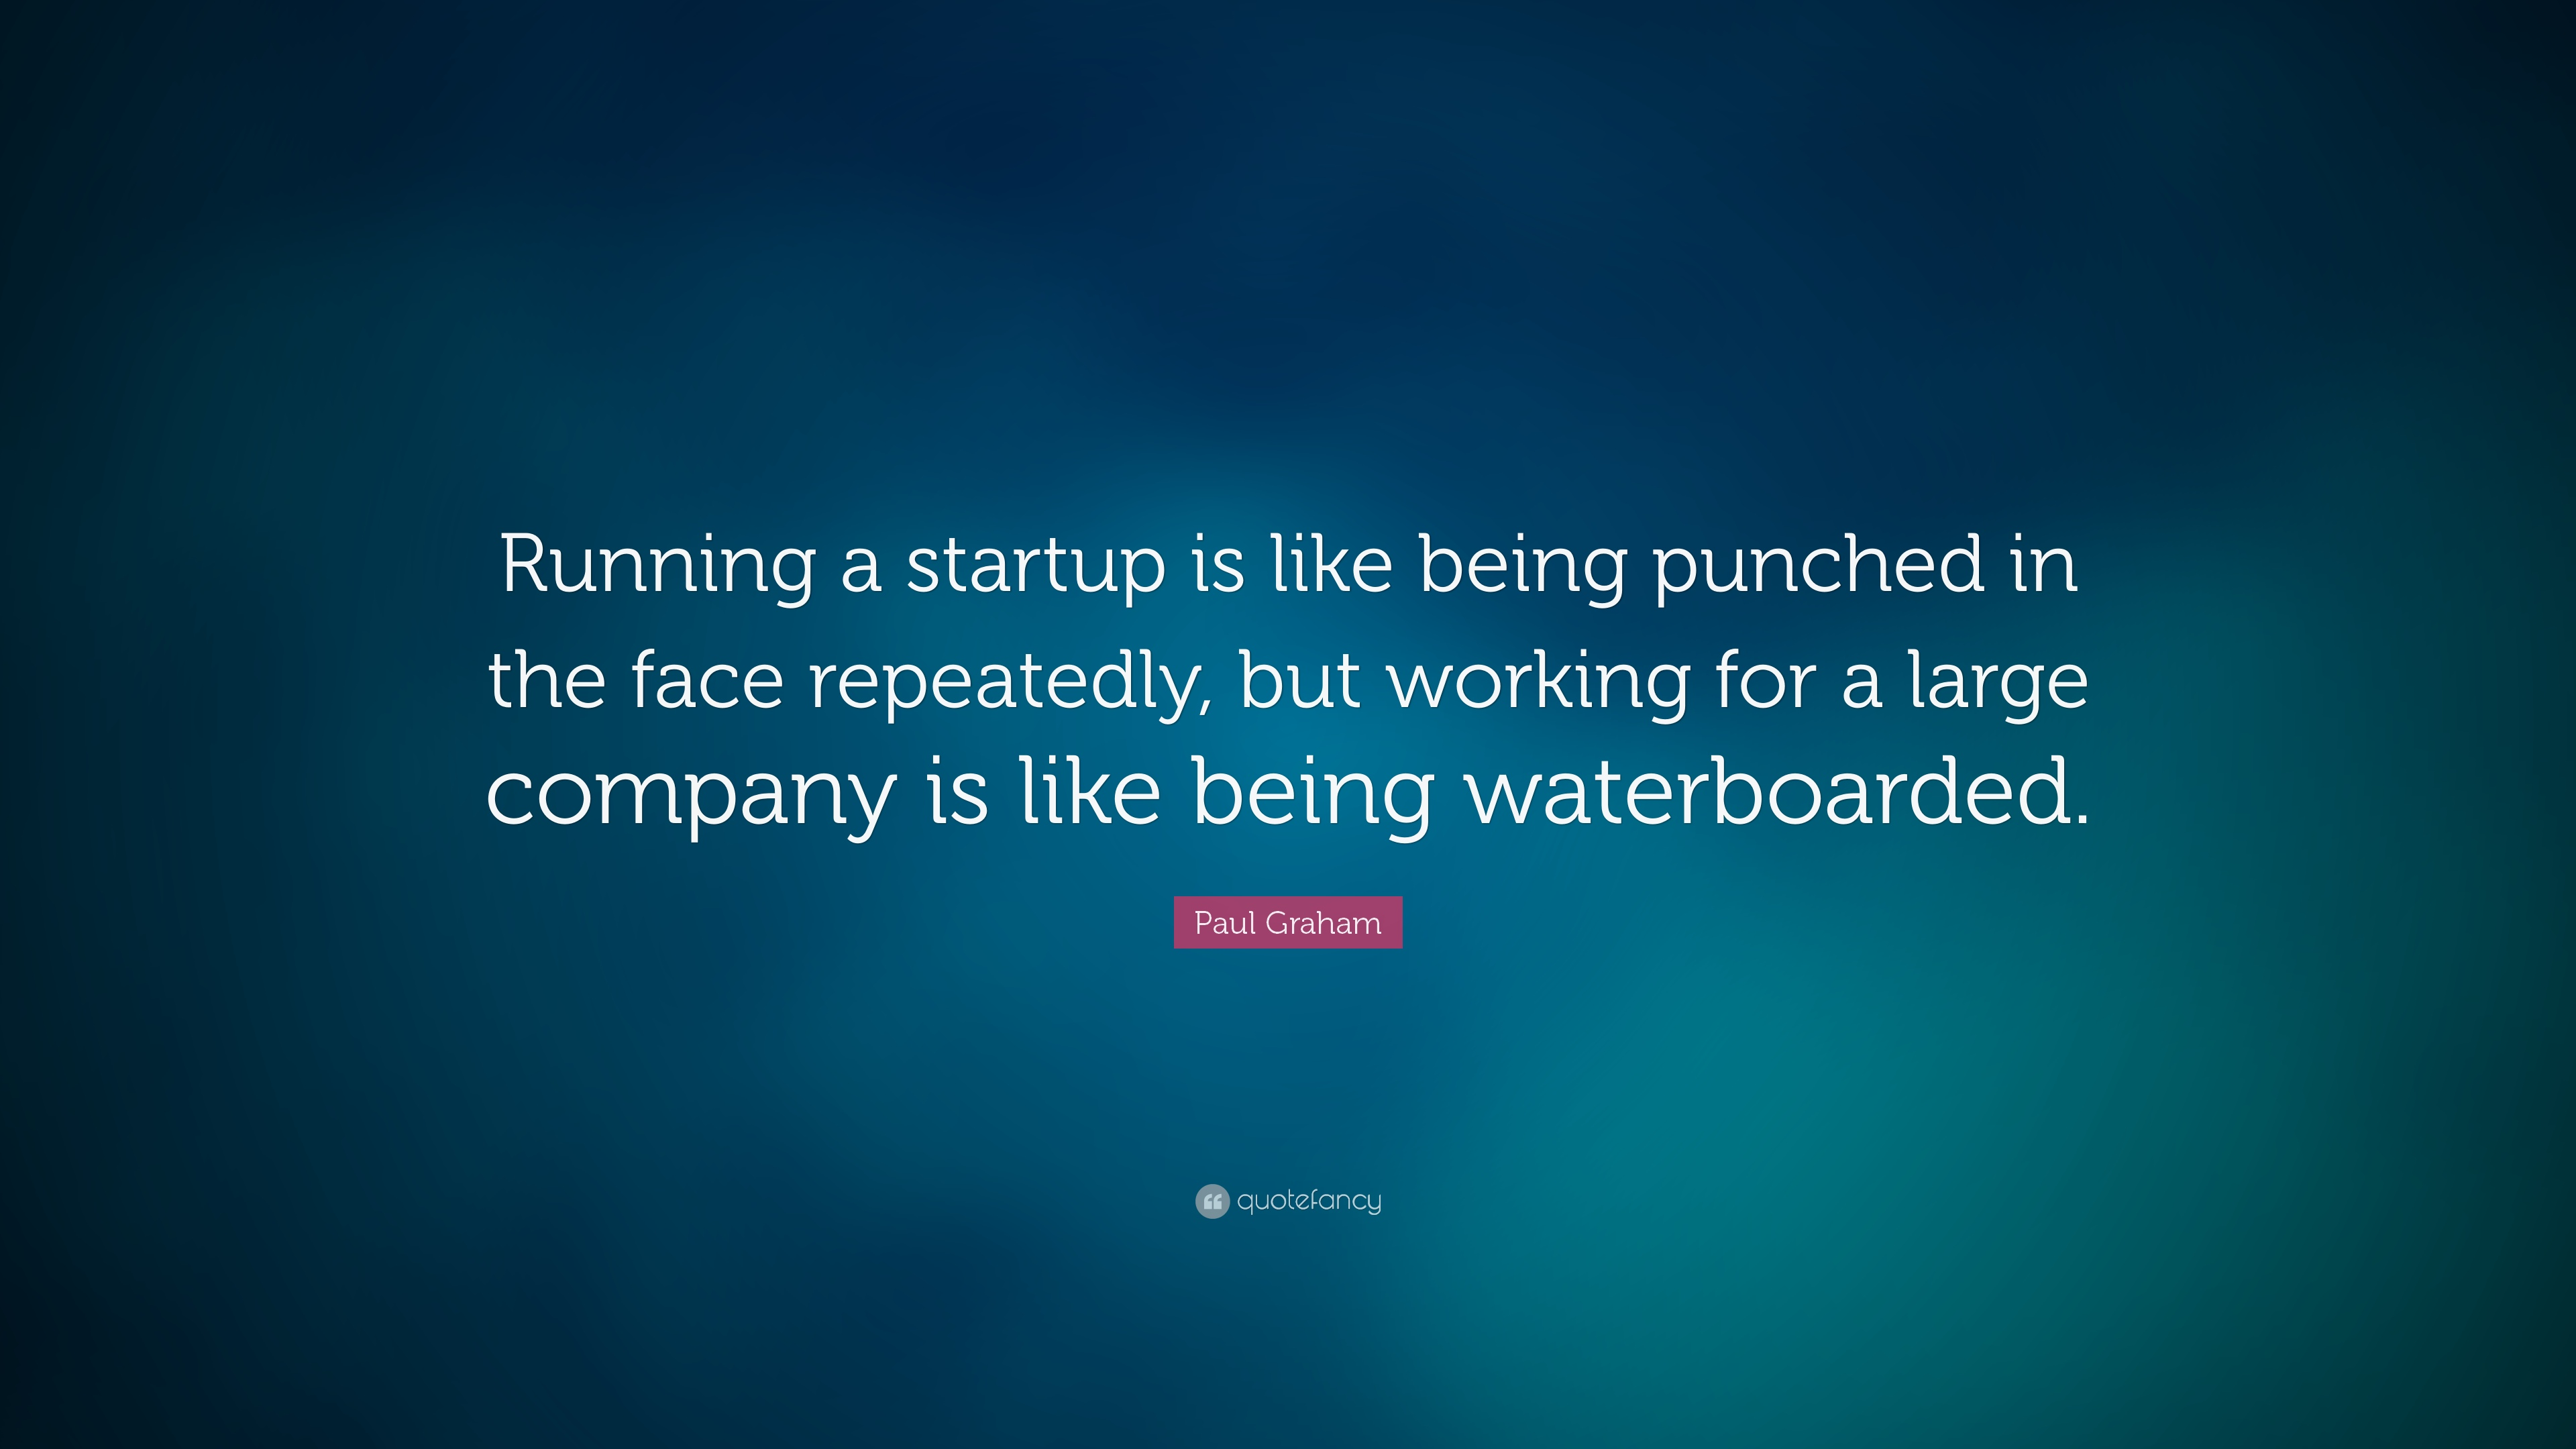 paul graham essays how to start a startup